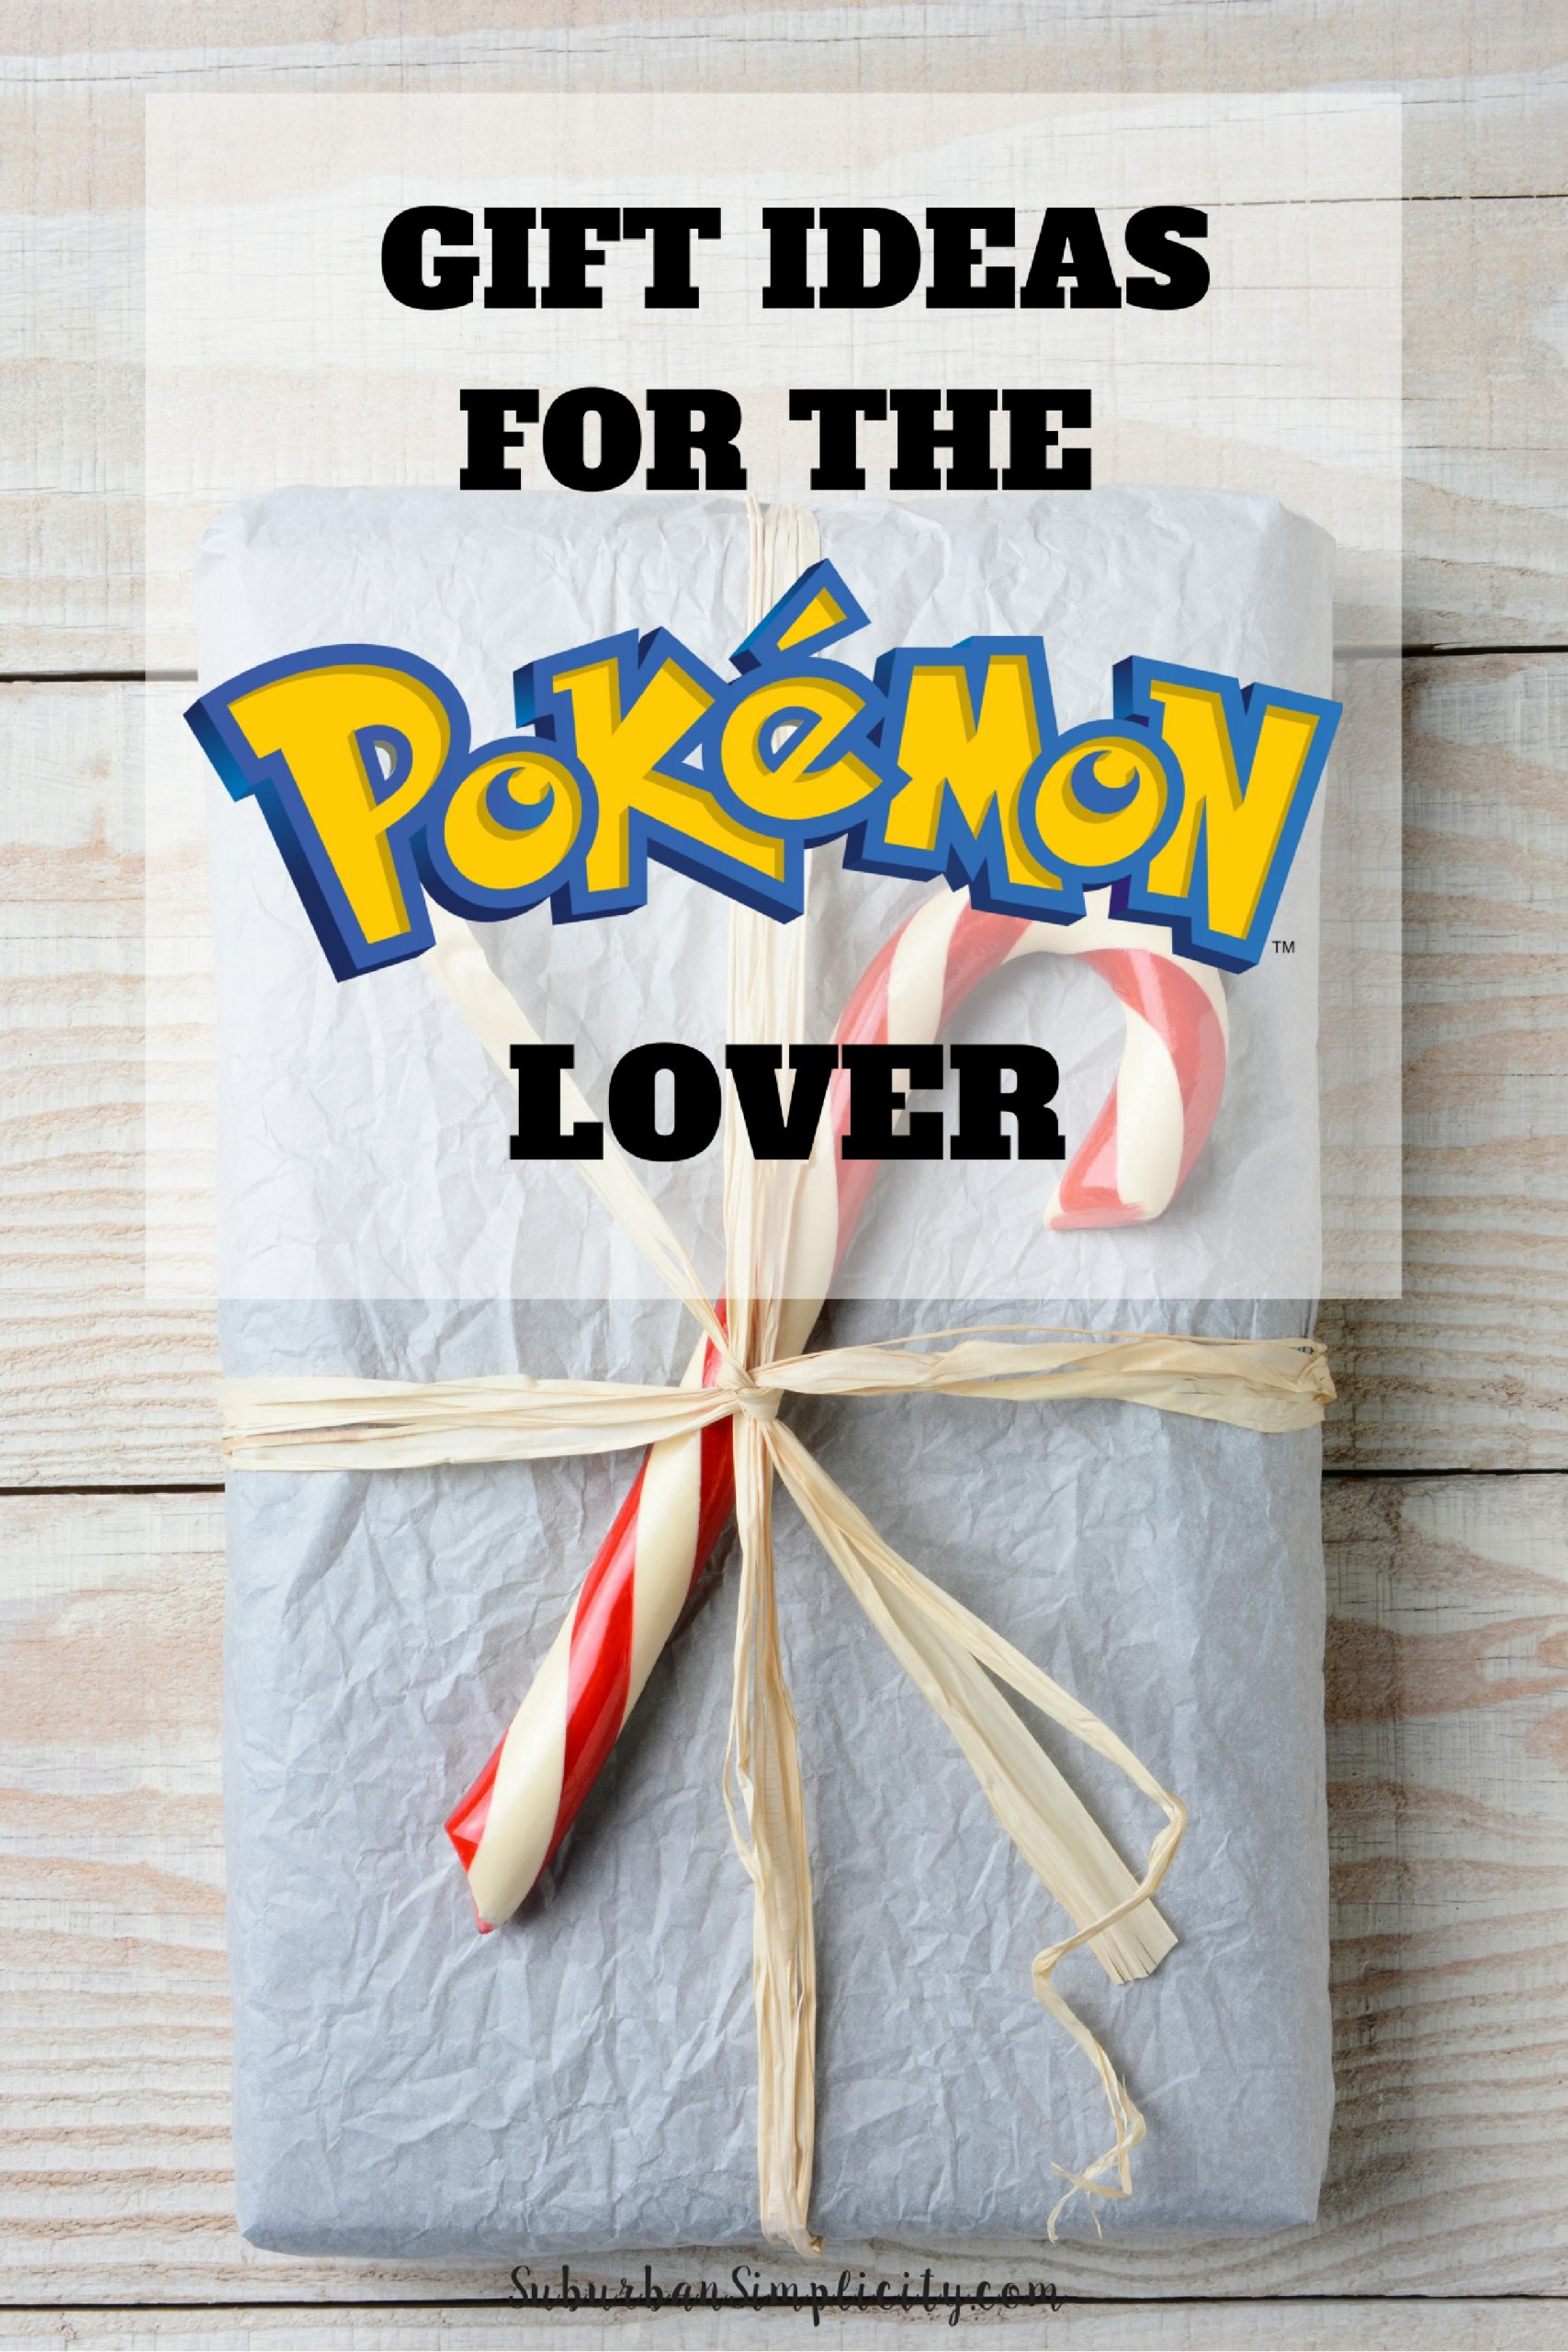 Gift Ideas for the Pokemon Lover  Gifts Ideas for Pokemon Fans